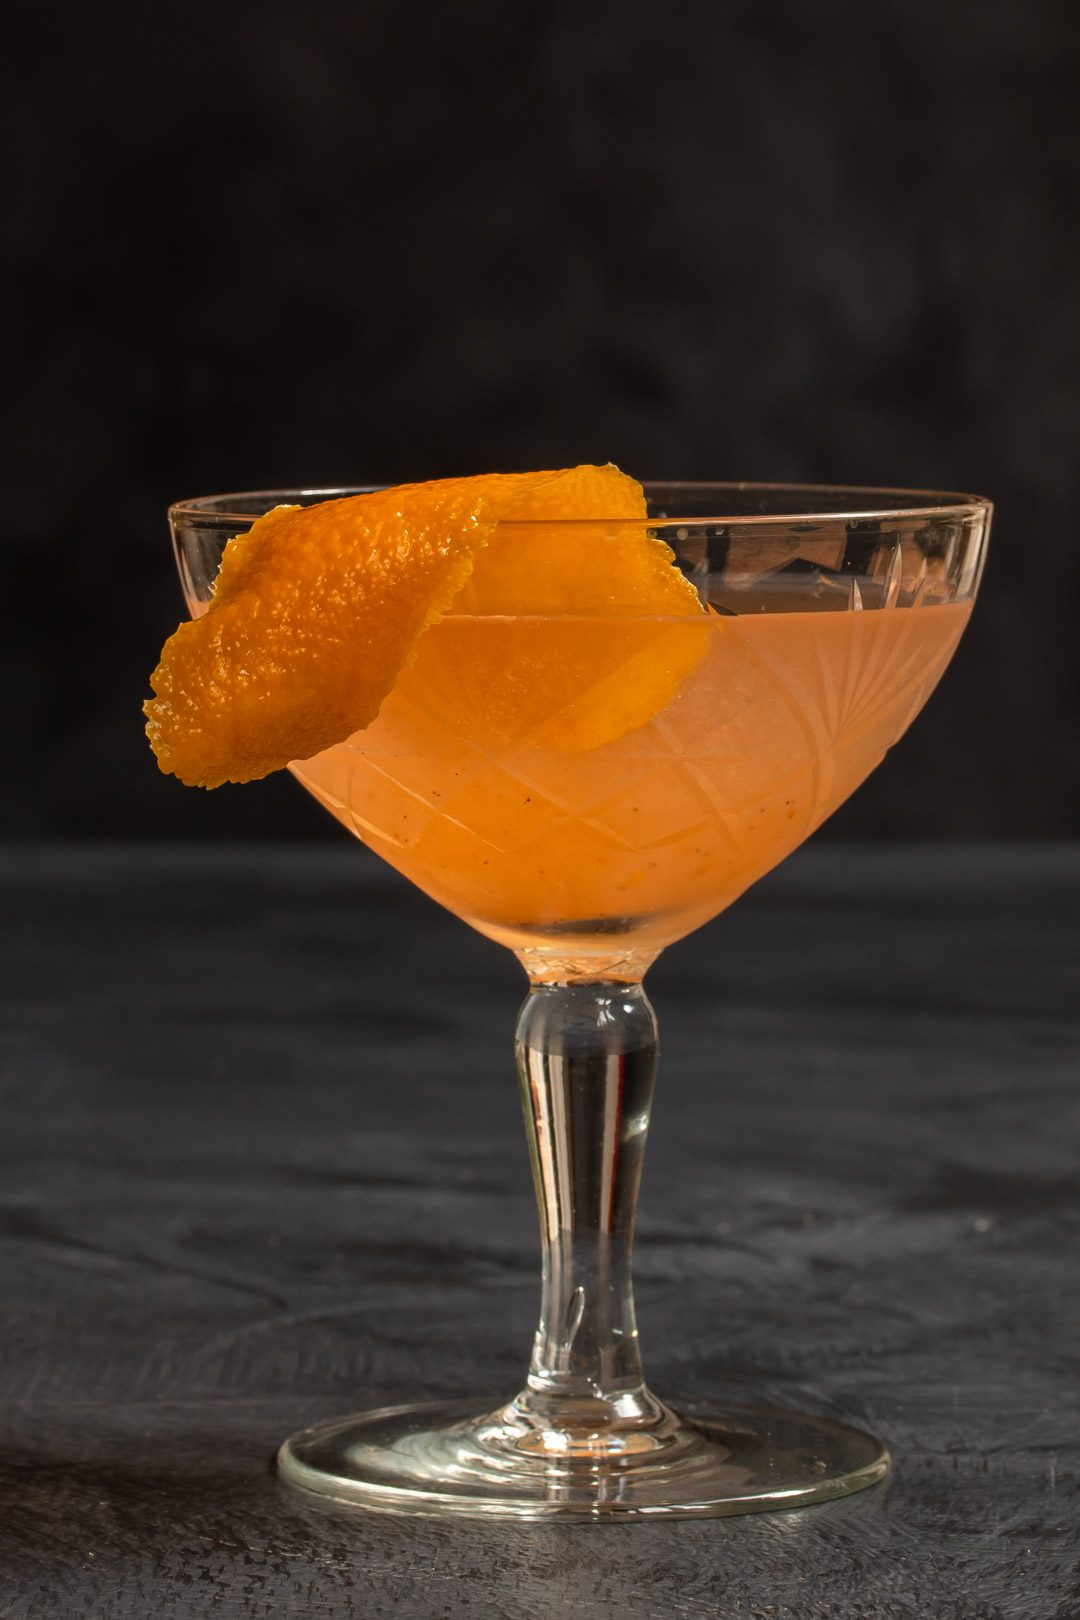 quince apple jam gin sour cocktail solo on grey textured background